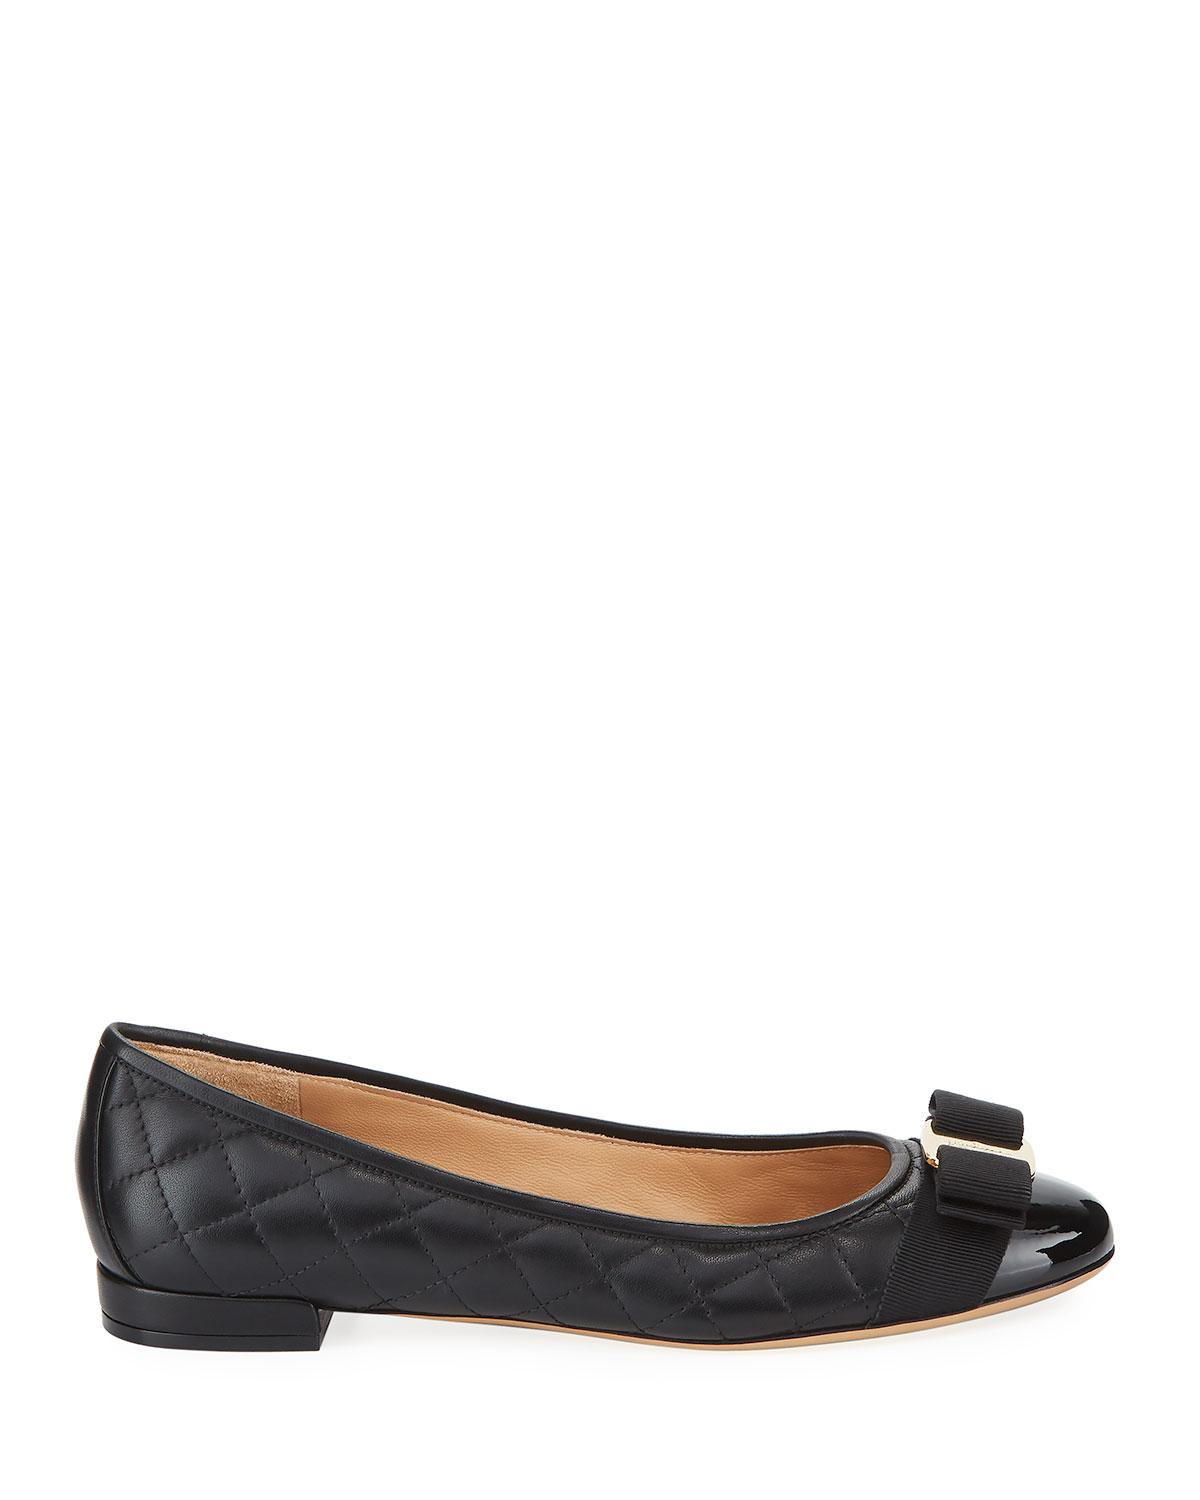 2279b3dca Lyst - Ferragamo Varina Quilted Bow Ballet Flats in Black - Save 33%